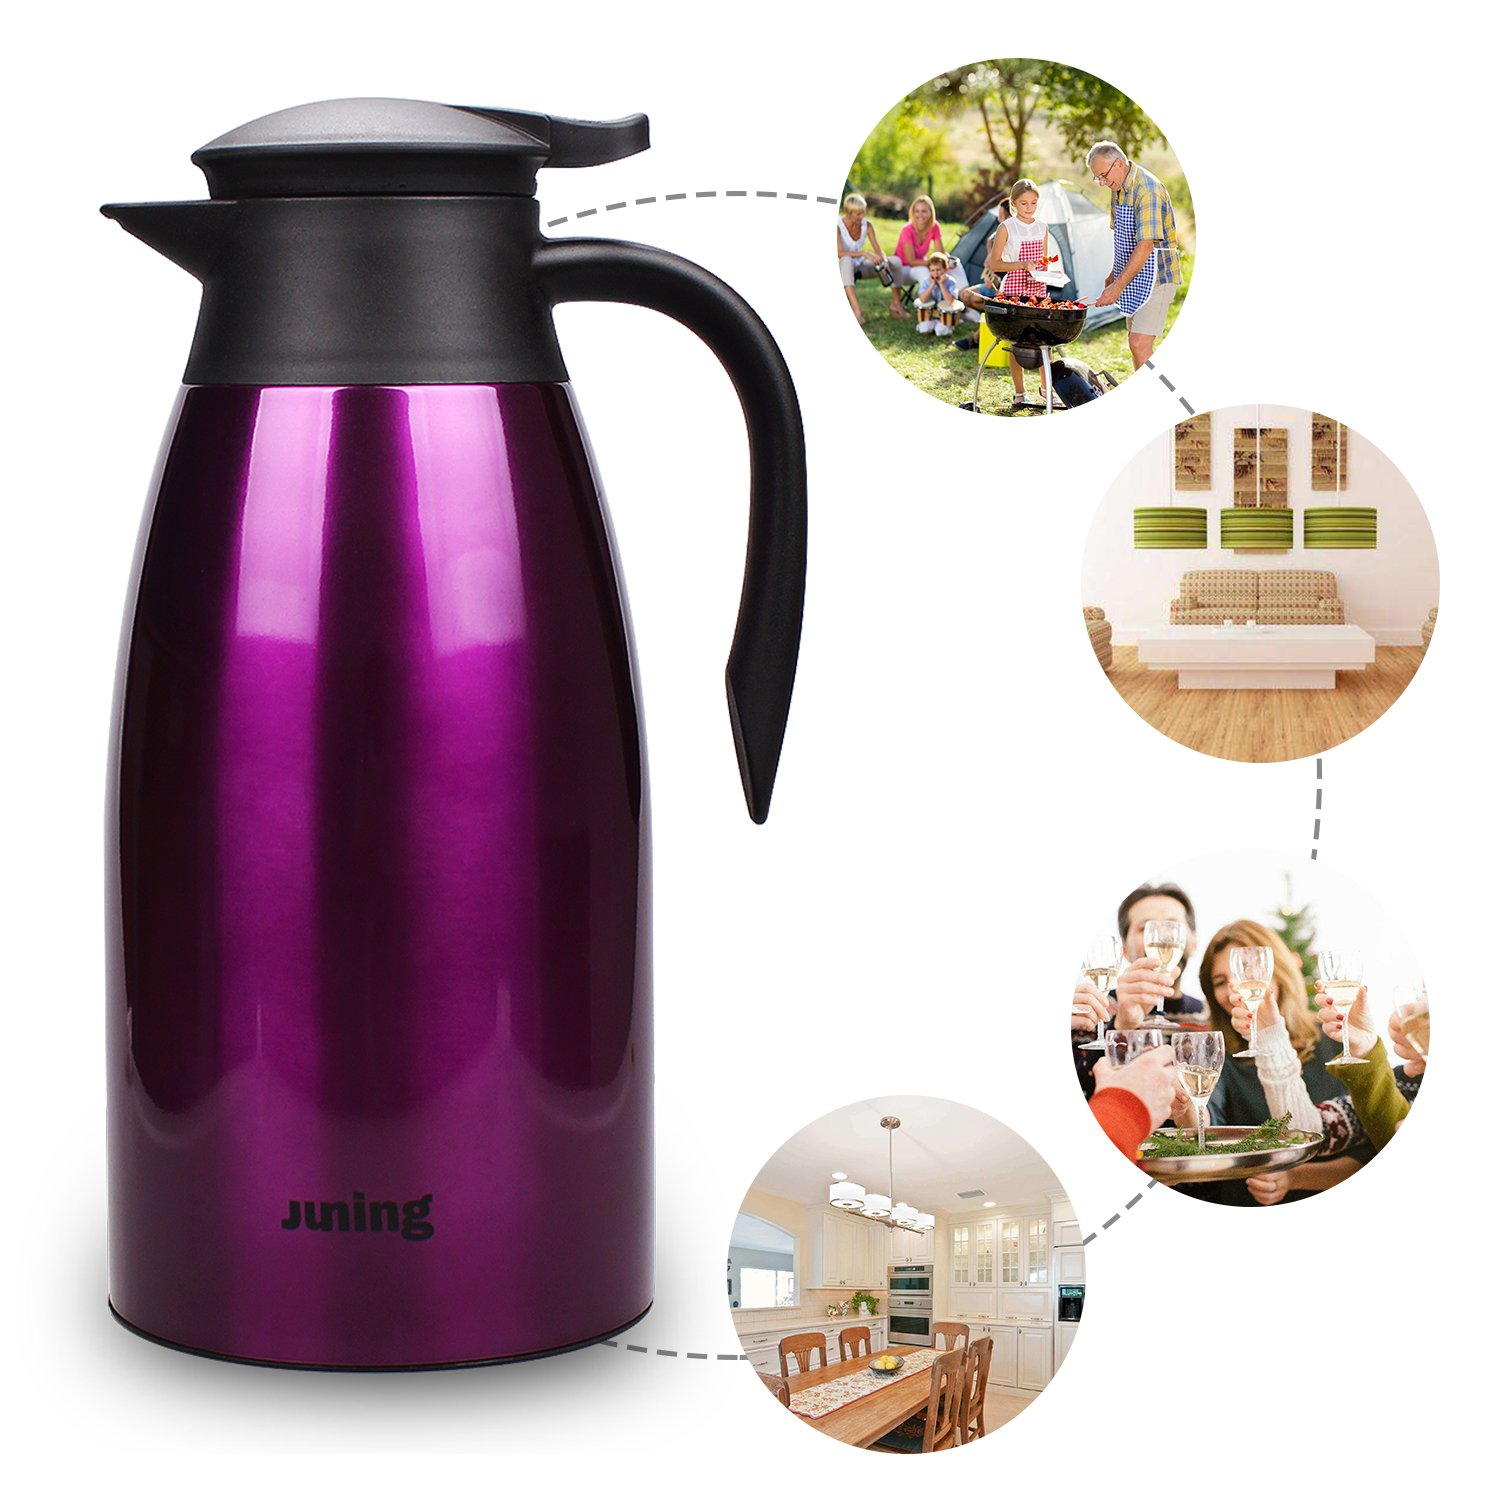 JUNING Stainless Steel Double Walled Vacuum Insulated Jug,Tea Water Coffee Jug//Insulation Pot//Cafetiere Jug by